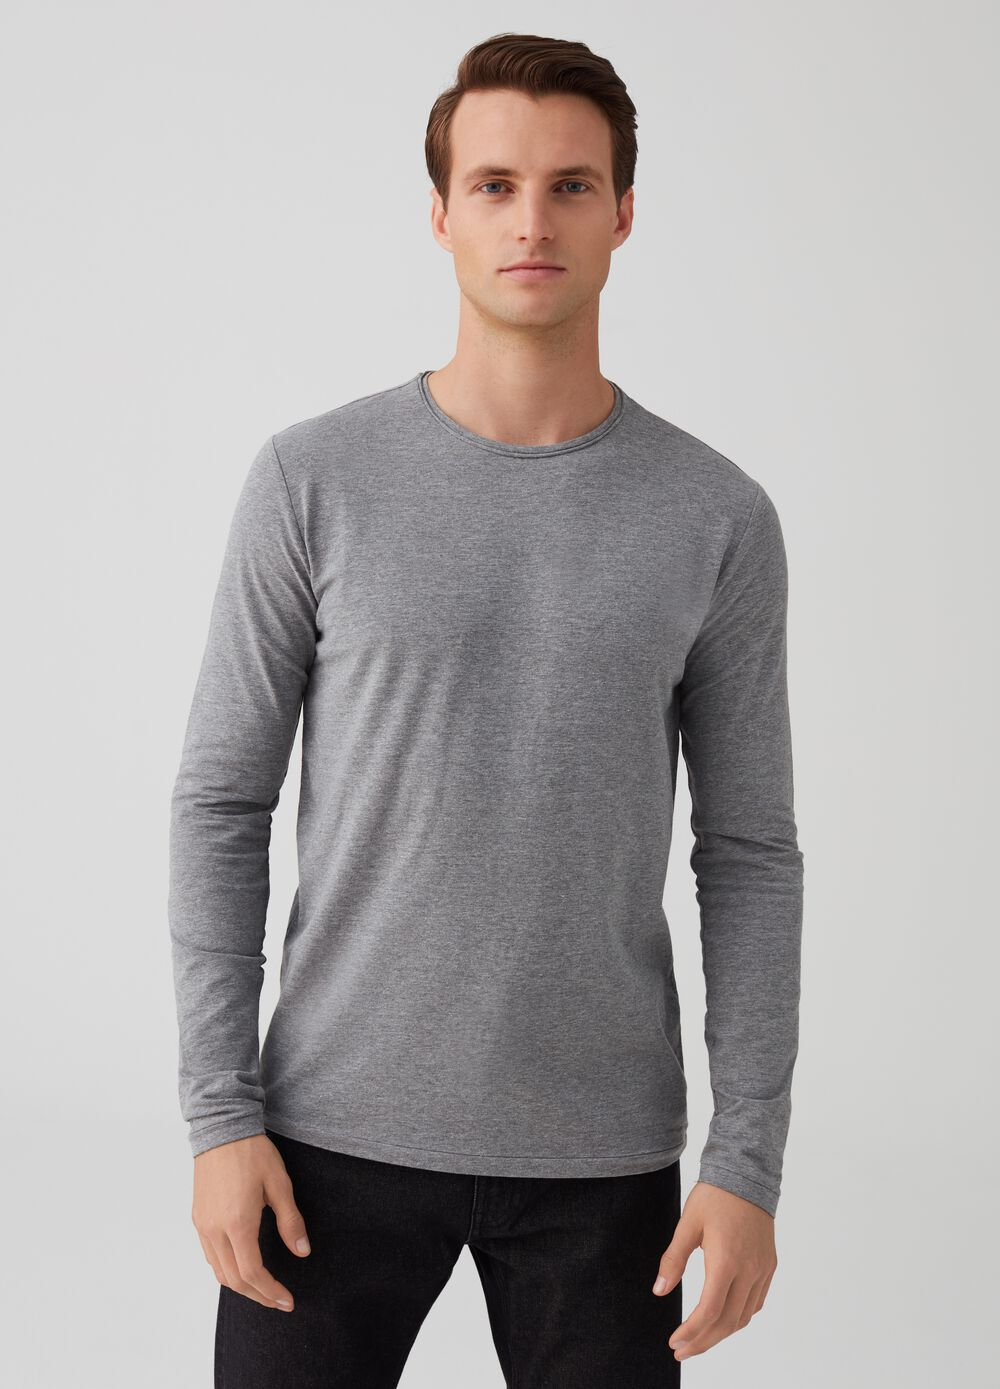 Mélange T-shirt with round neck